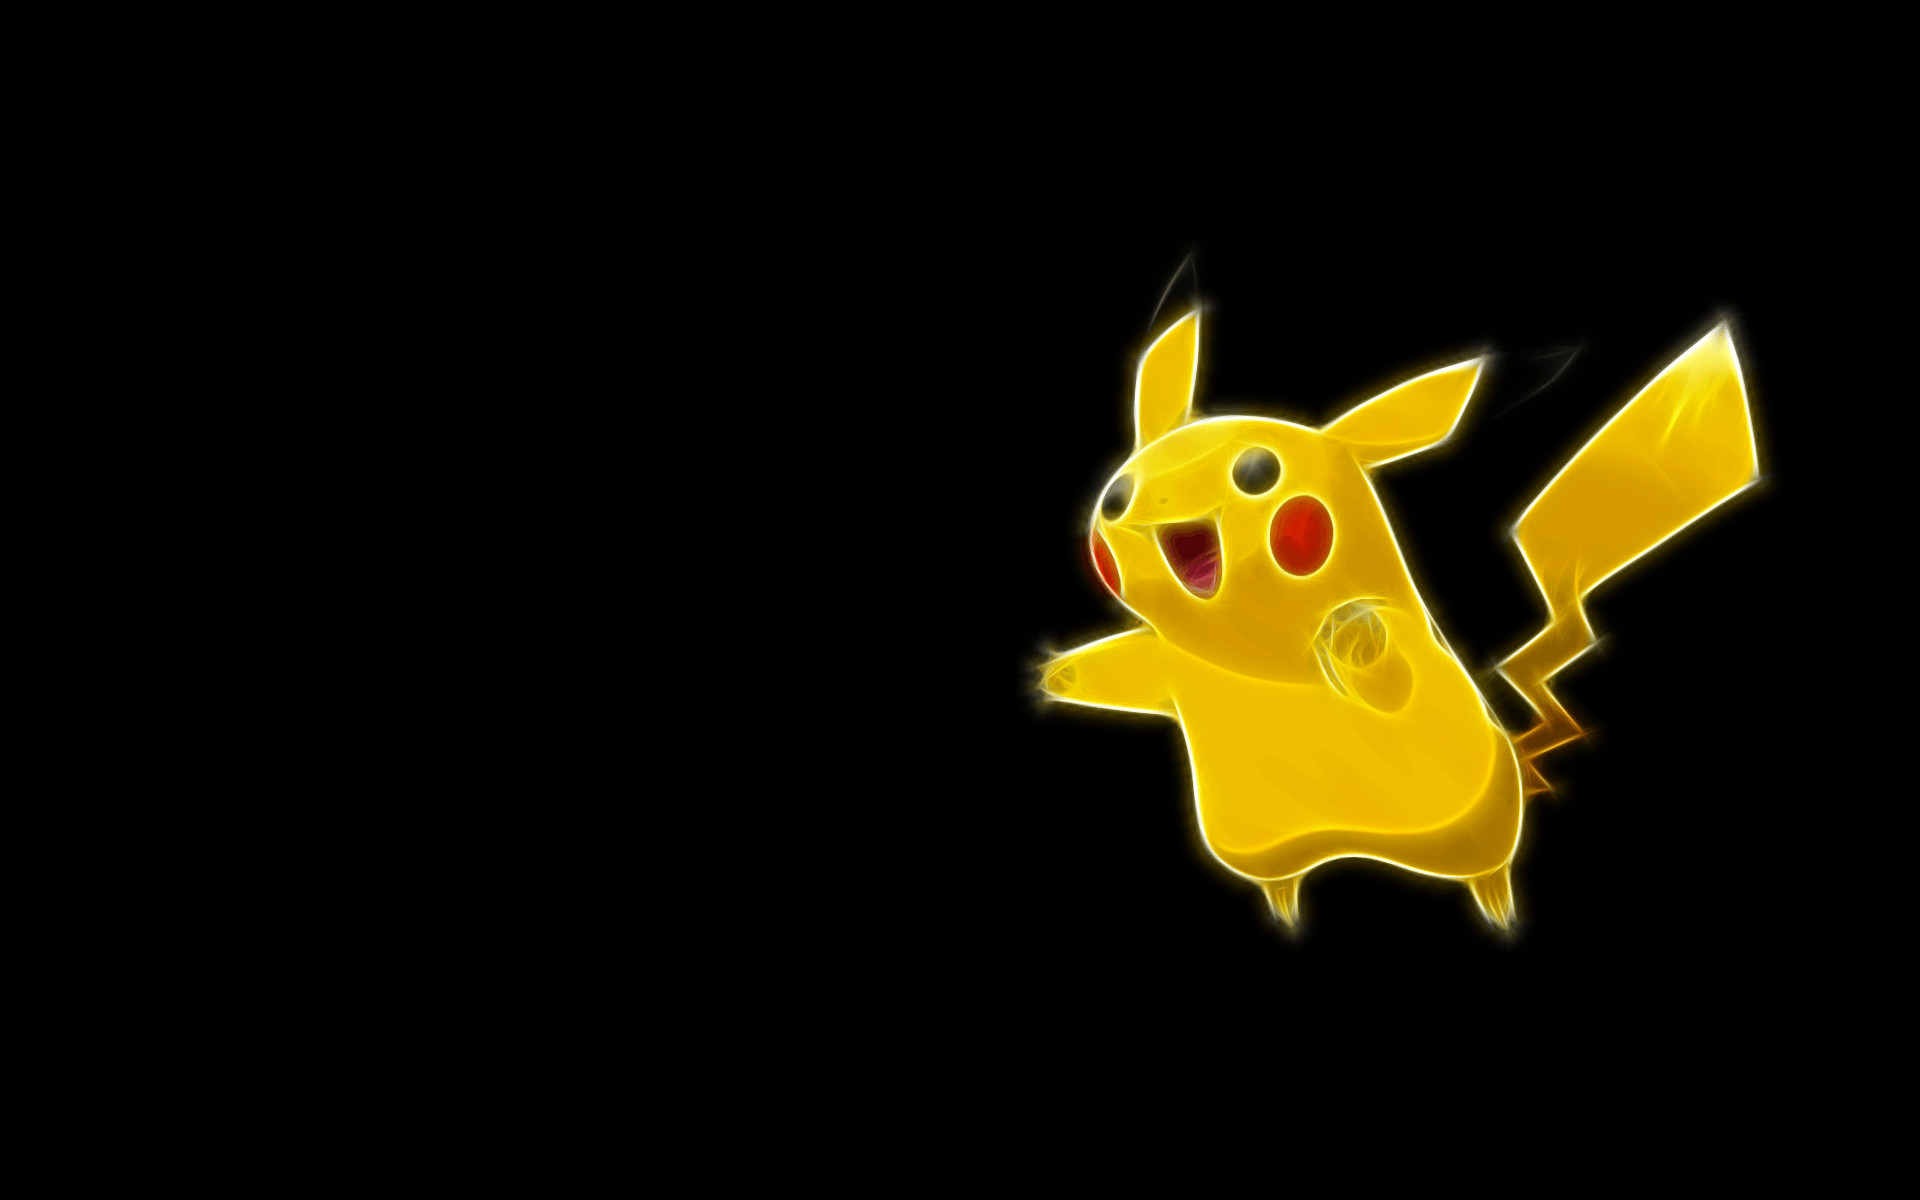 Related Pictures Pokemon Pikachu Wallpapers Pikachu Wallpapers .